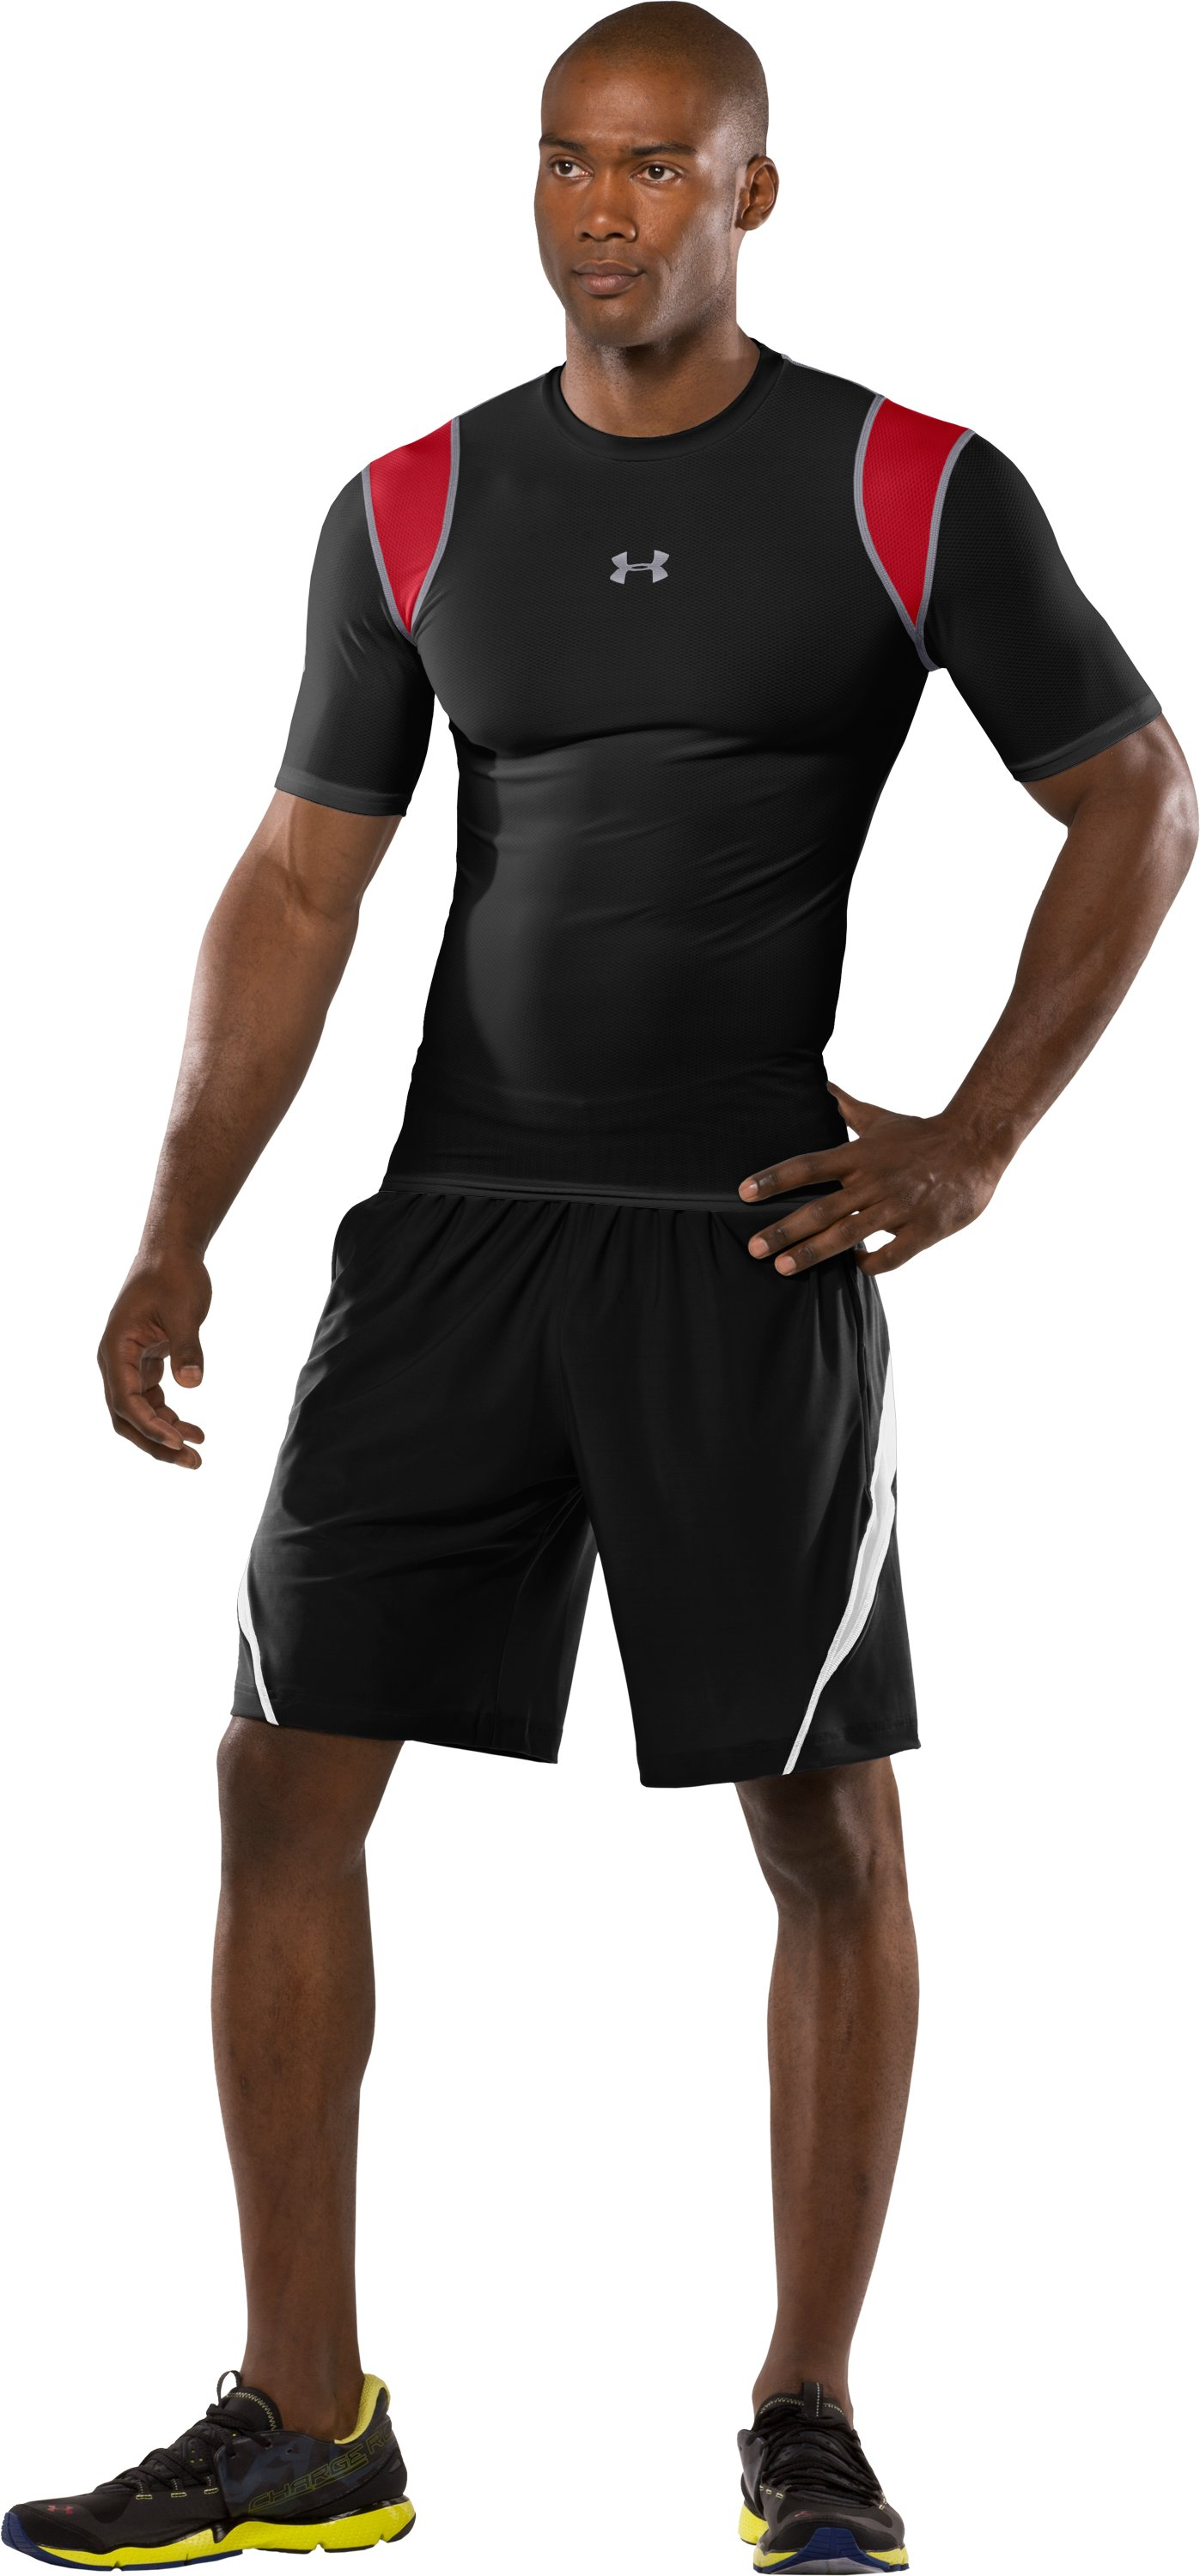 Men's HeatGear® Vented Compression Short Sleeve T-Shirt, Black